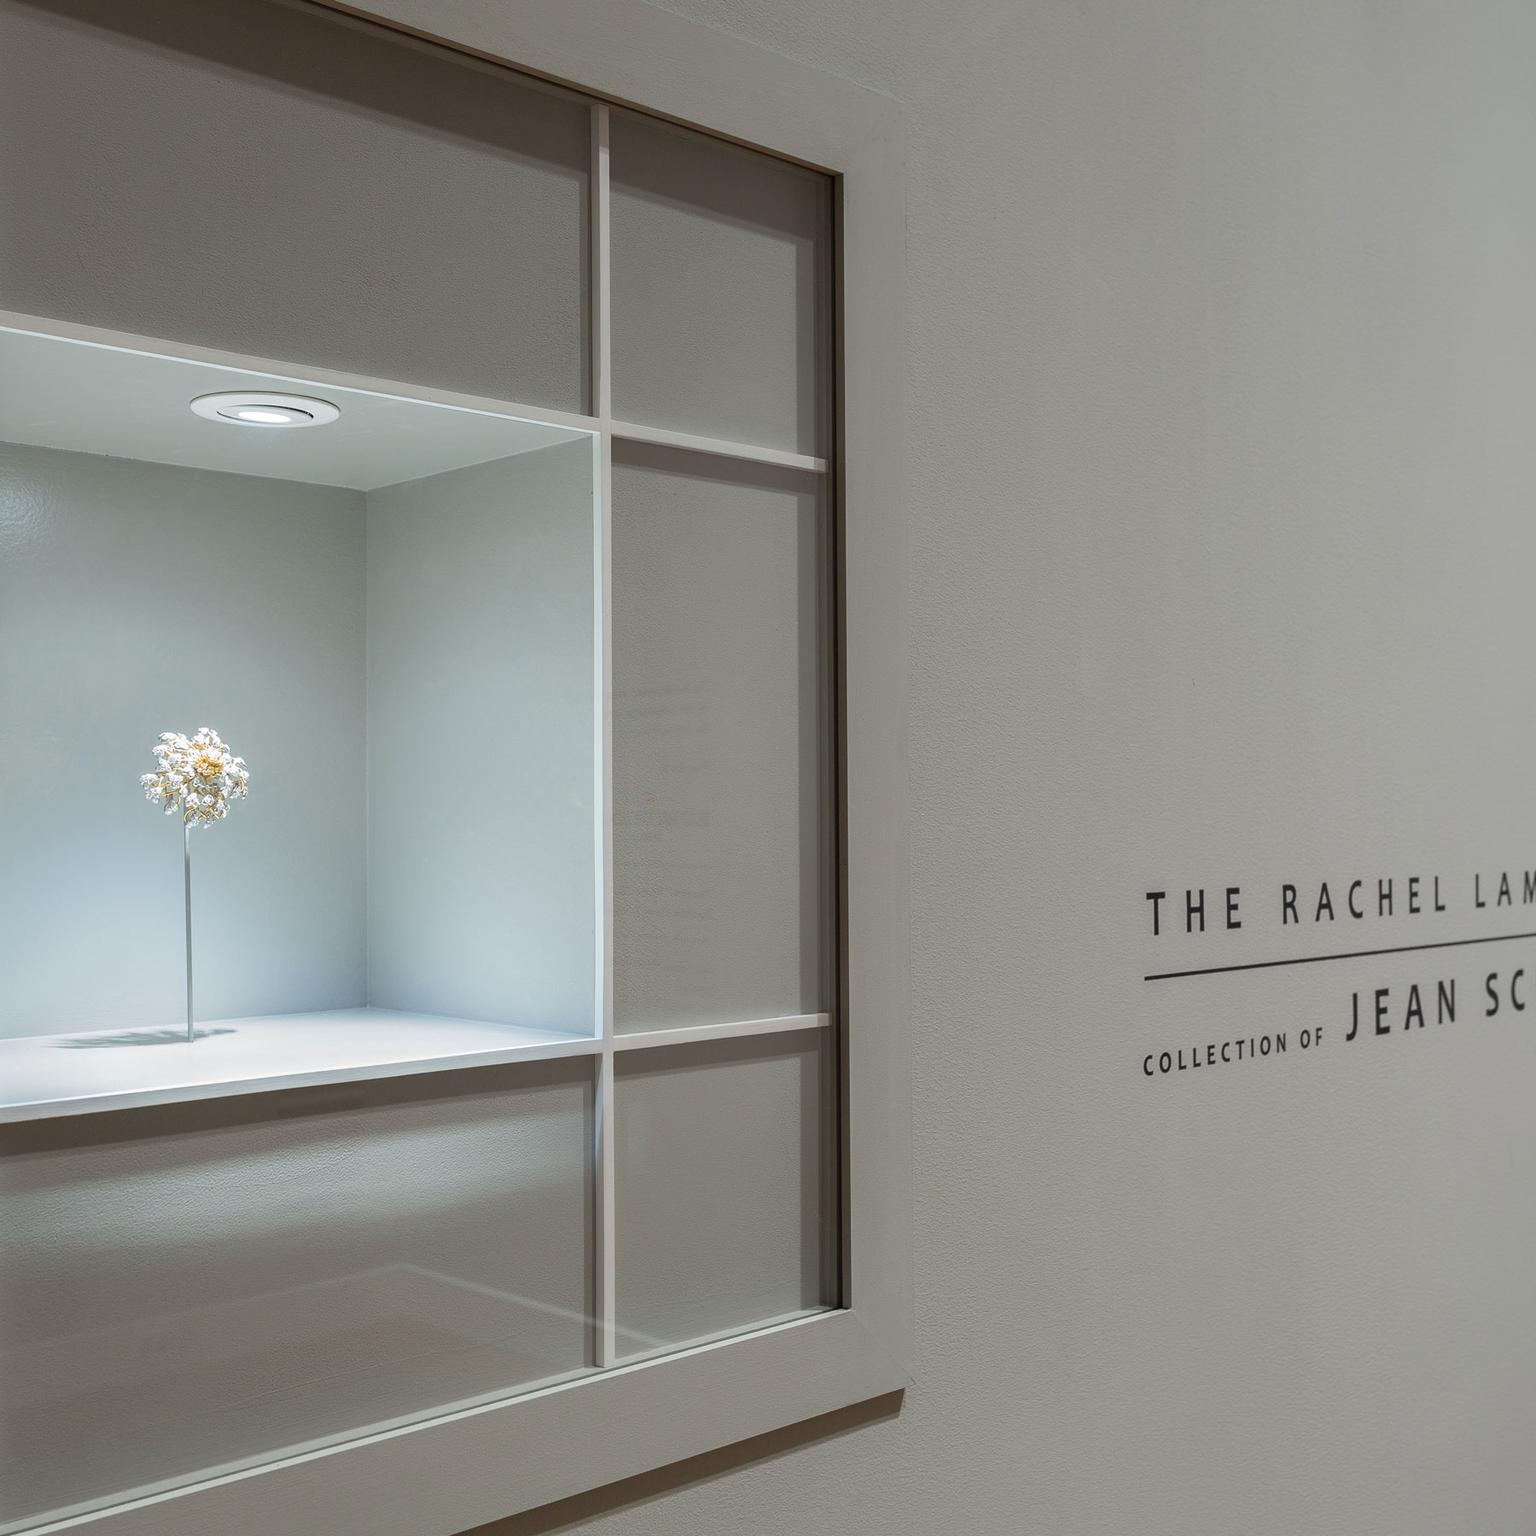 The Rachel Lambert Mellon Collection of Jean Schlumberger exhibited at the VMFA